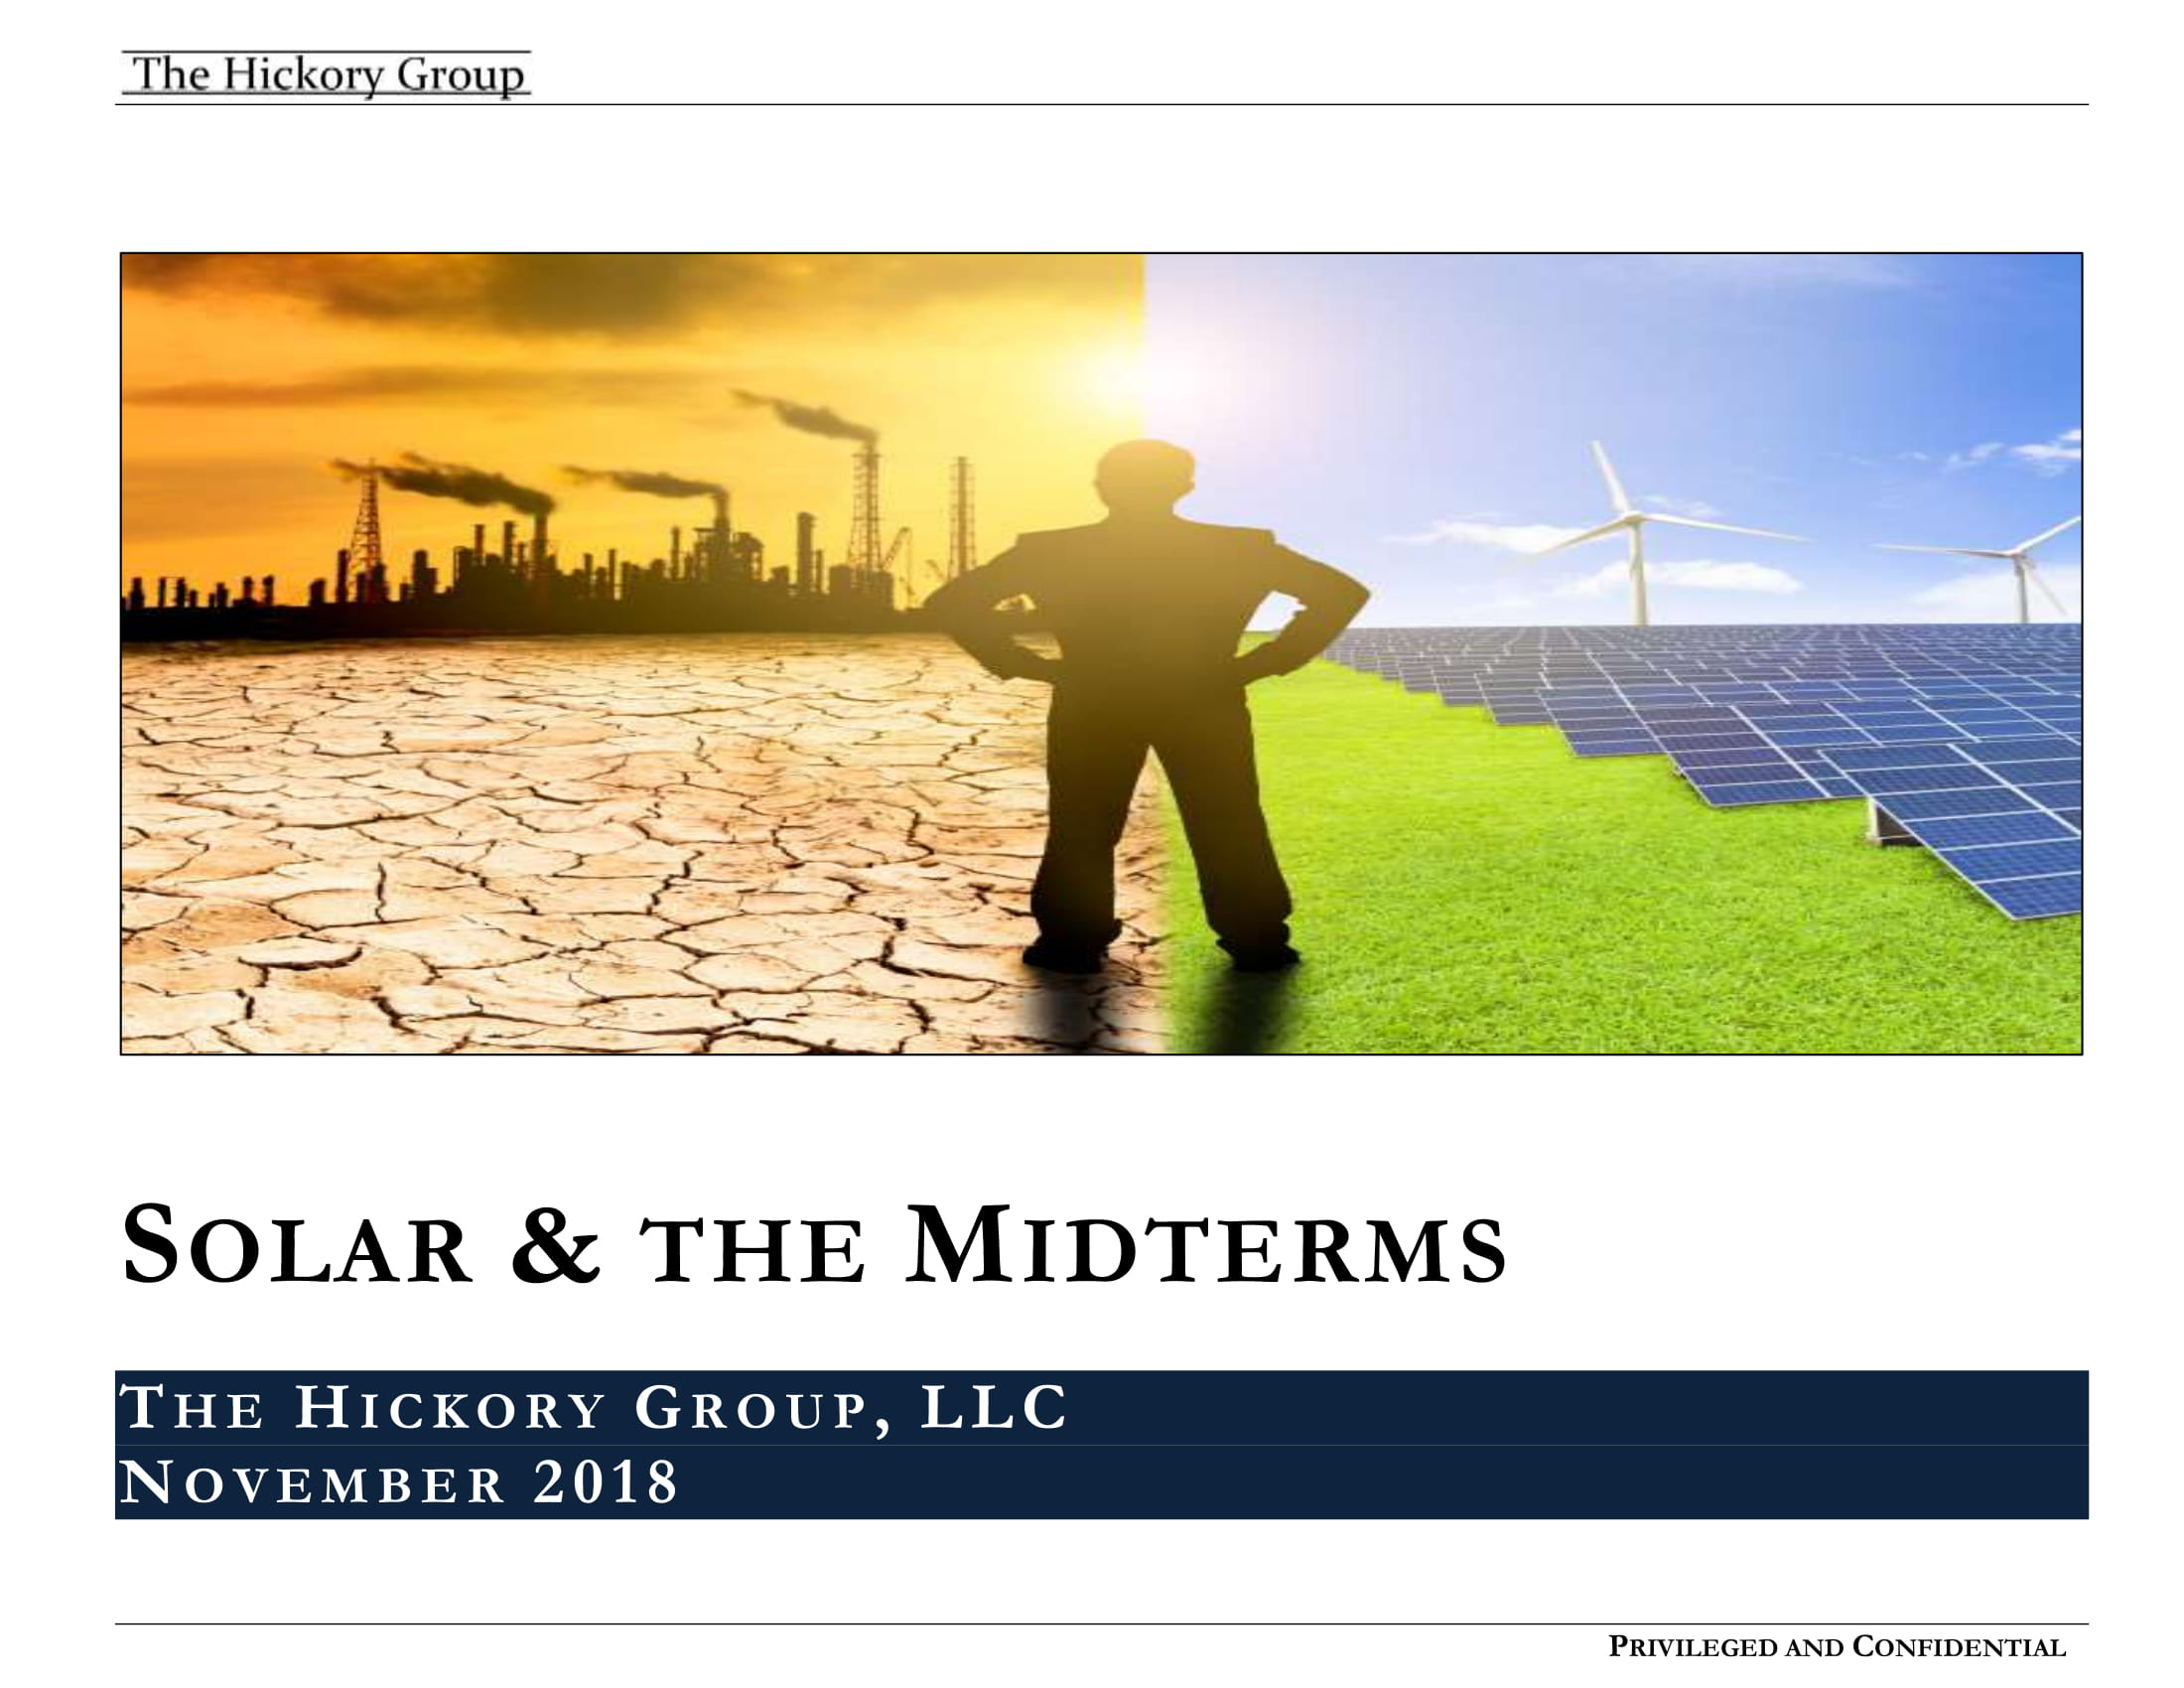 THG Solar Industry_The Midterms & Solar Wins and Losses (9 November 2018) Privileged Confidential(1)[8]-1.jpg